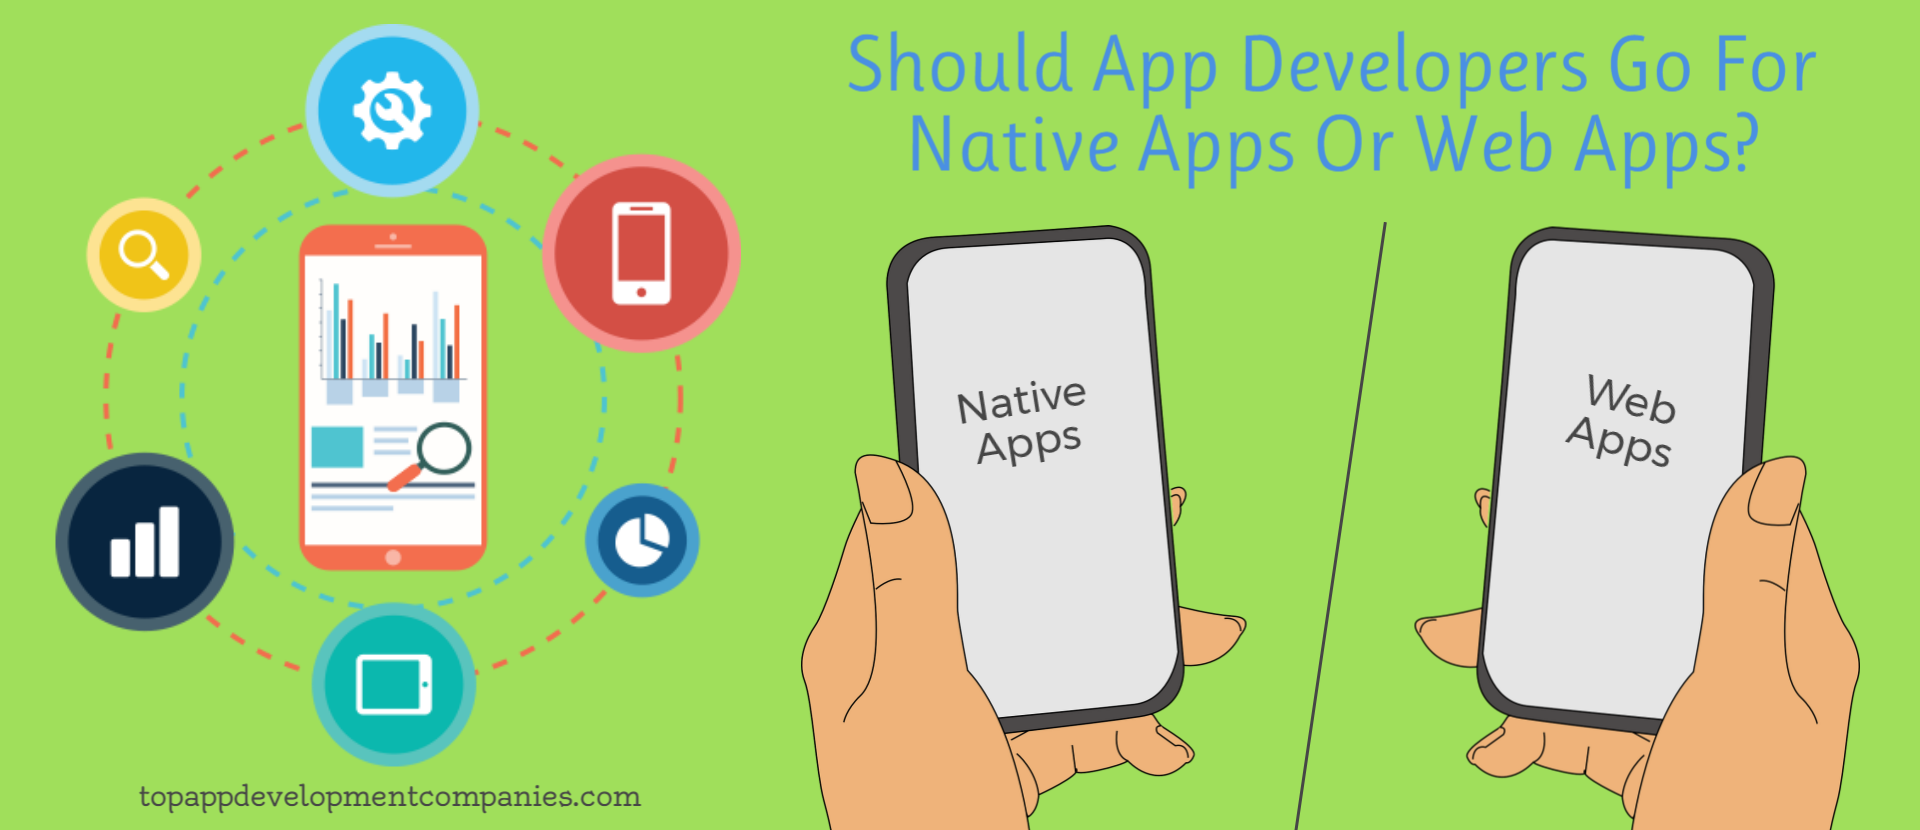 native apps or web apps